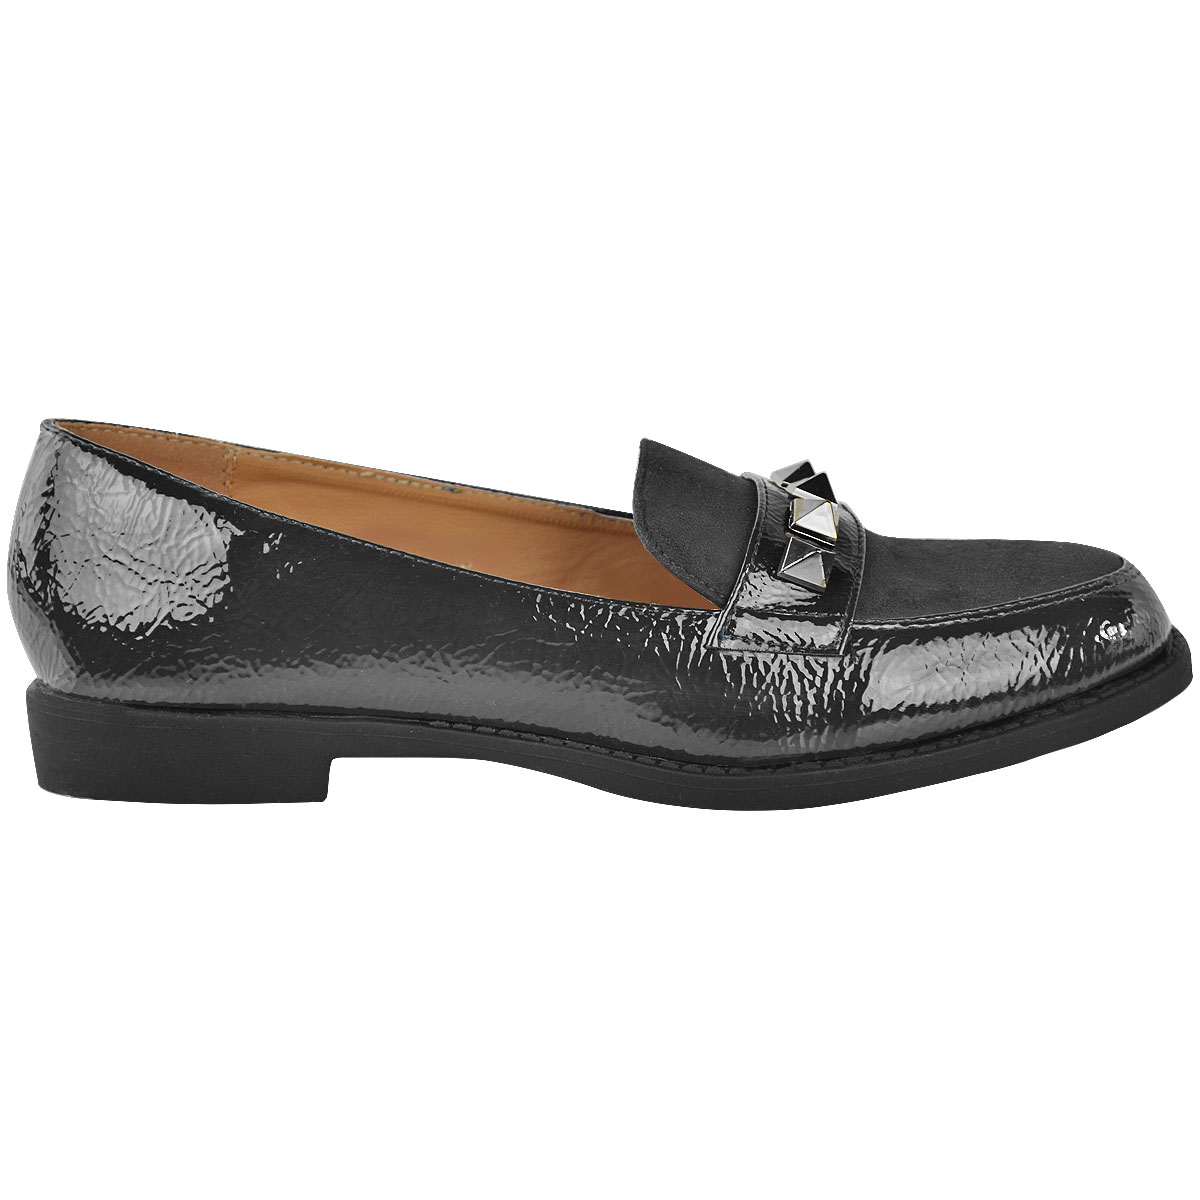 Womens-Ladies-Loafers-Brogues-Pumps-Casual-School-Office-Comfy-Work-Flats-Size thumbnail 7